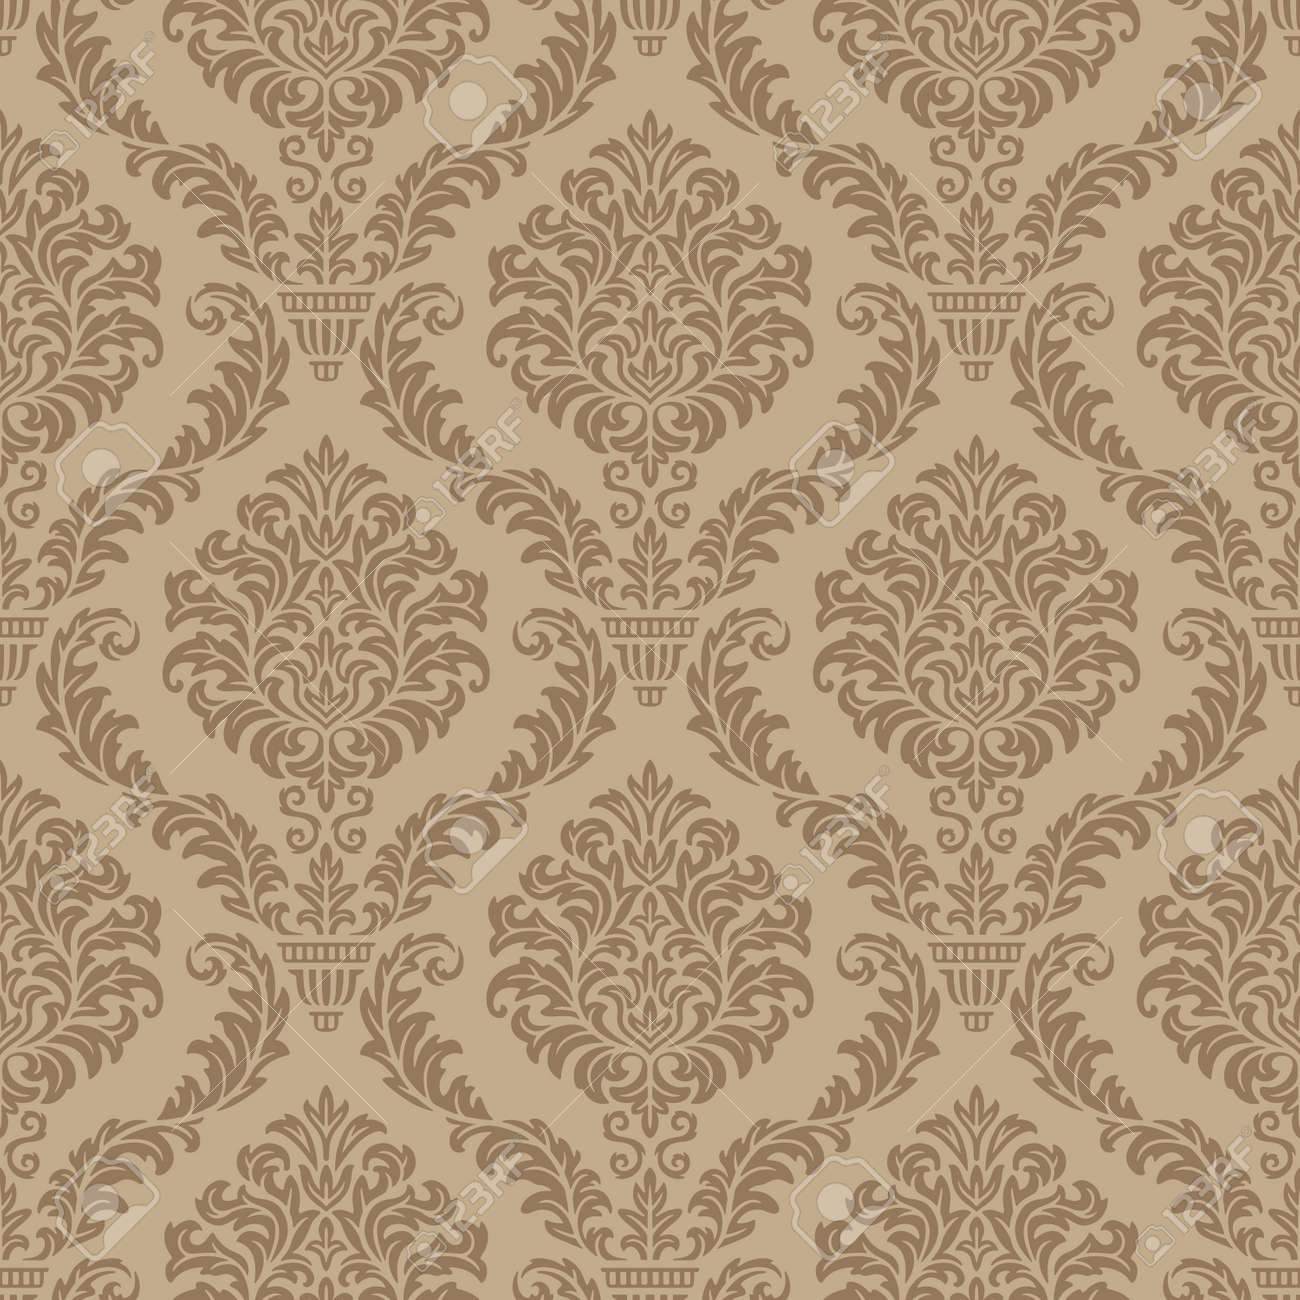 Seamless Damask Wallpaper Stock Vector   11028731. Seamless Damask Wallpaper Royalty Free Cliparts  Vectors  And